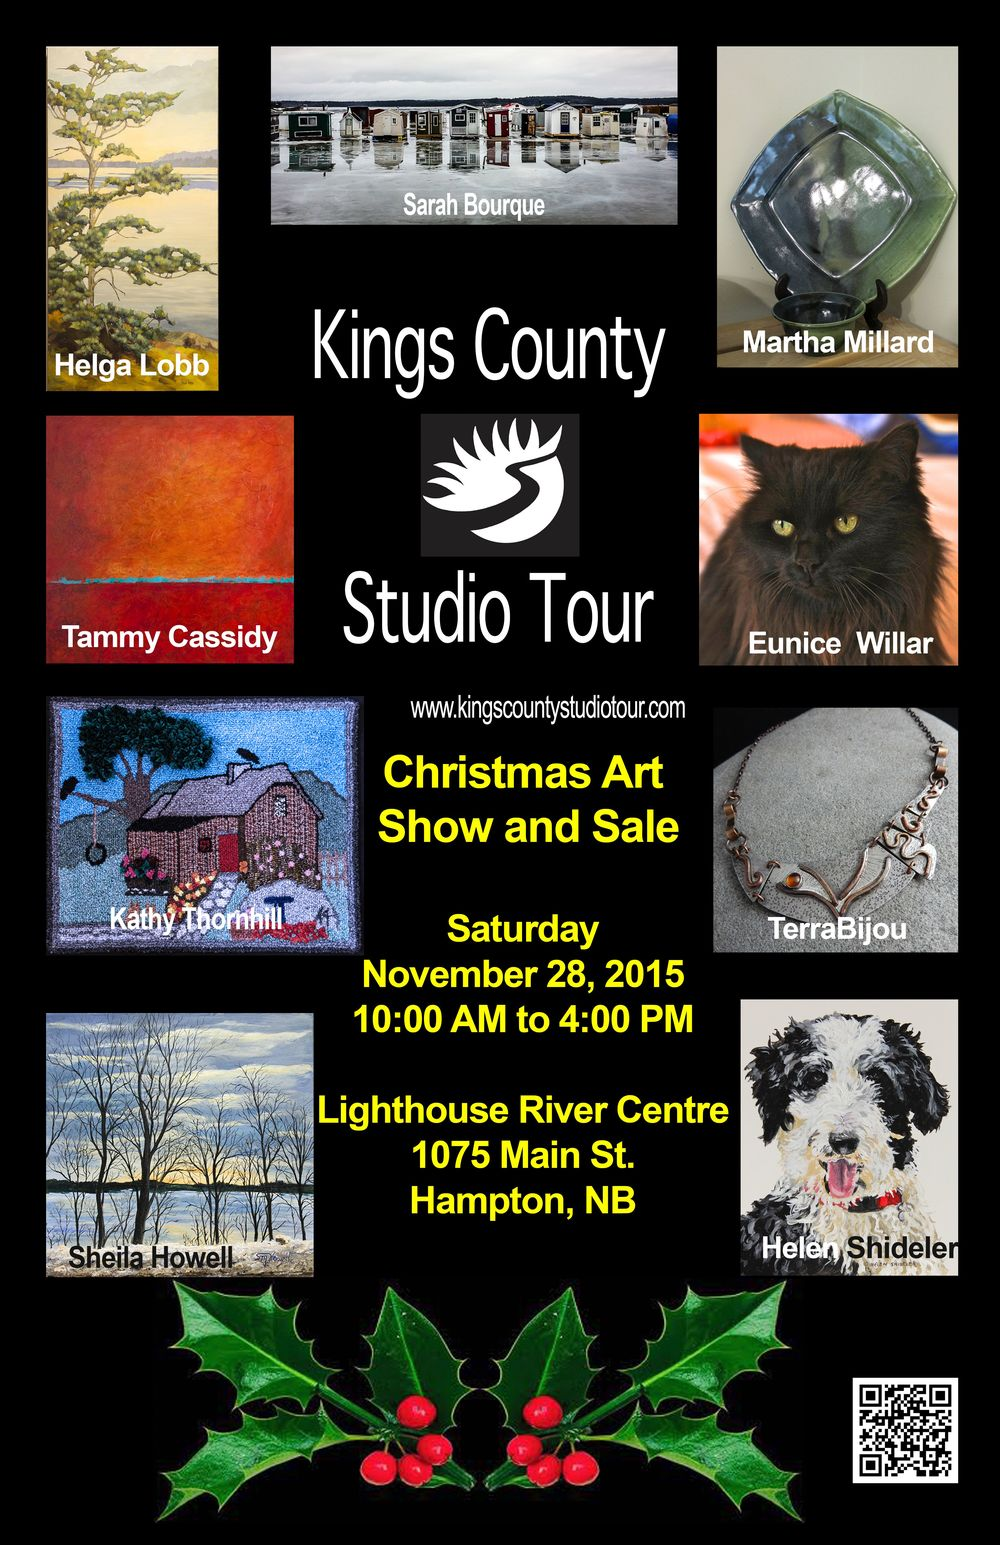 Kings County Studio Tour Christmas Art Show and Sale